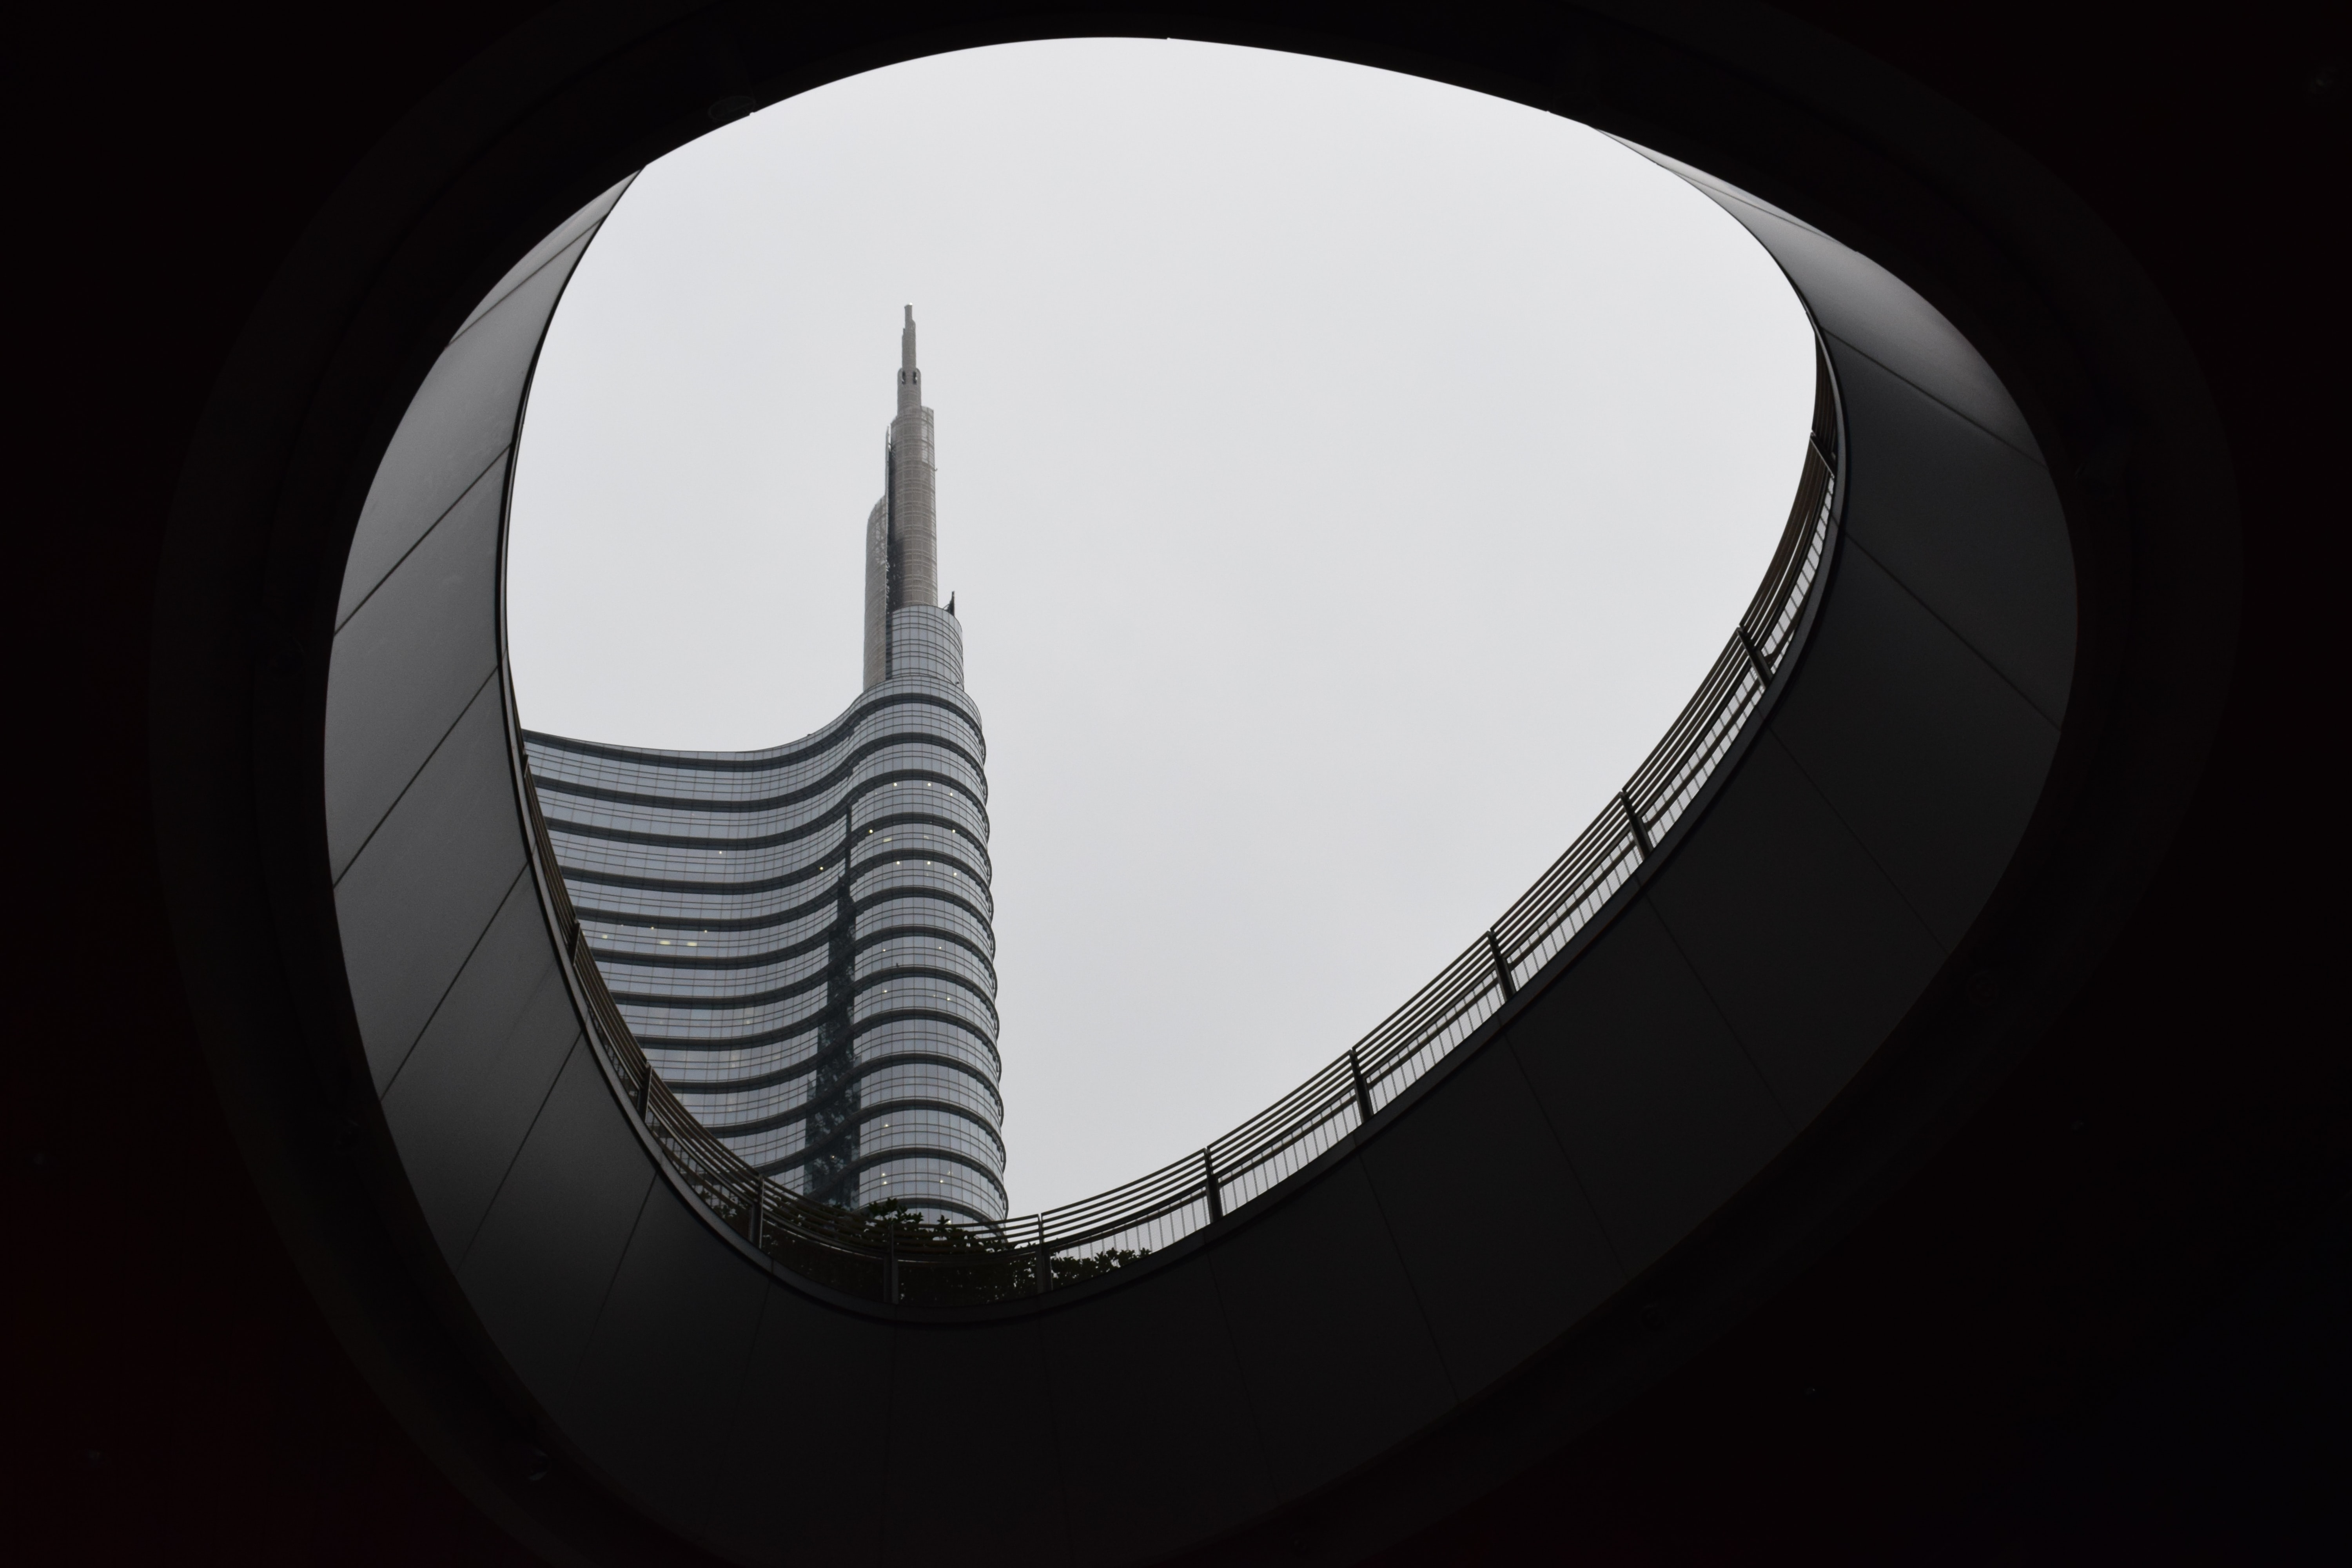 worm's eye view of building